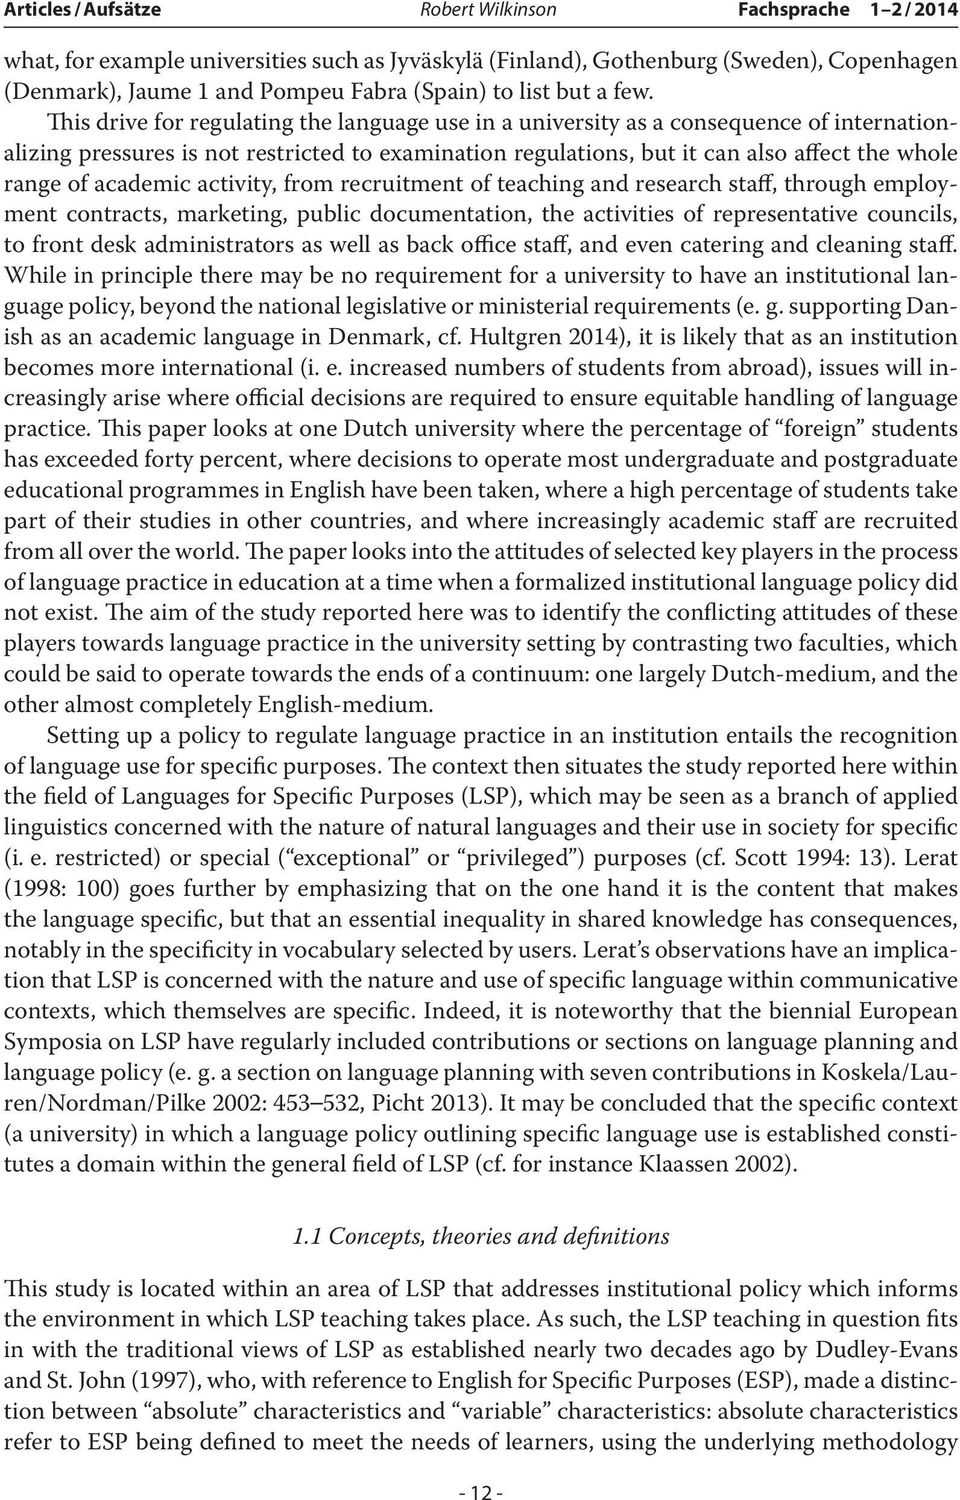 This drive for regulating the language use in a university as a consequence of internationalizing pressures is not restricted to examination regulations, but it can also affect the whole range of